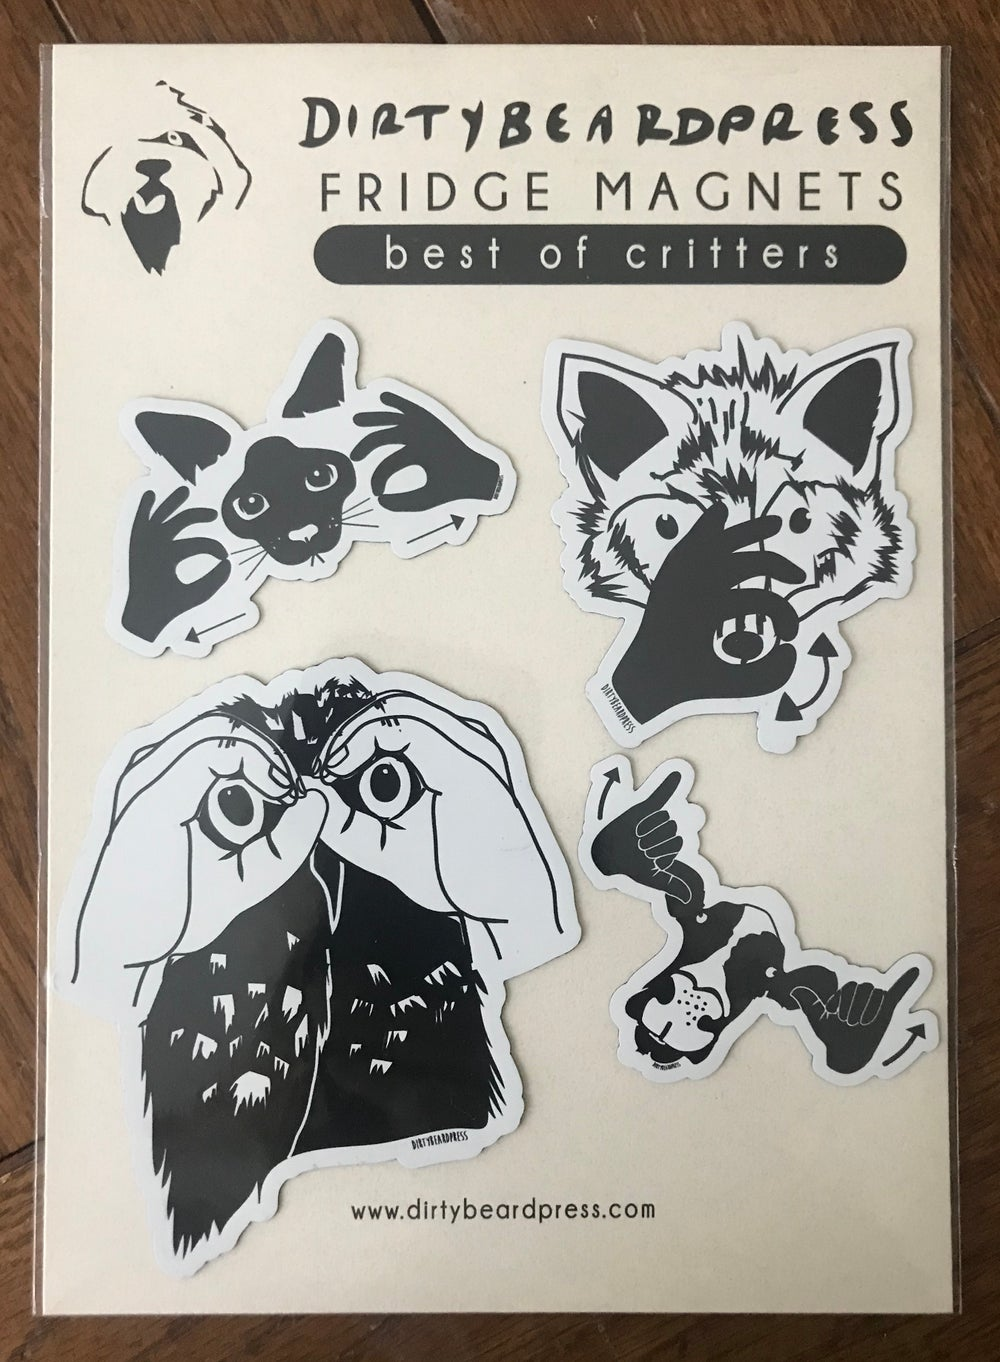 Image of Best of critters magnets